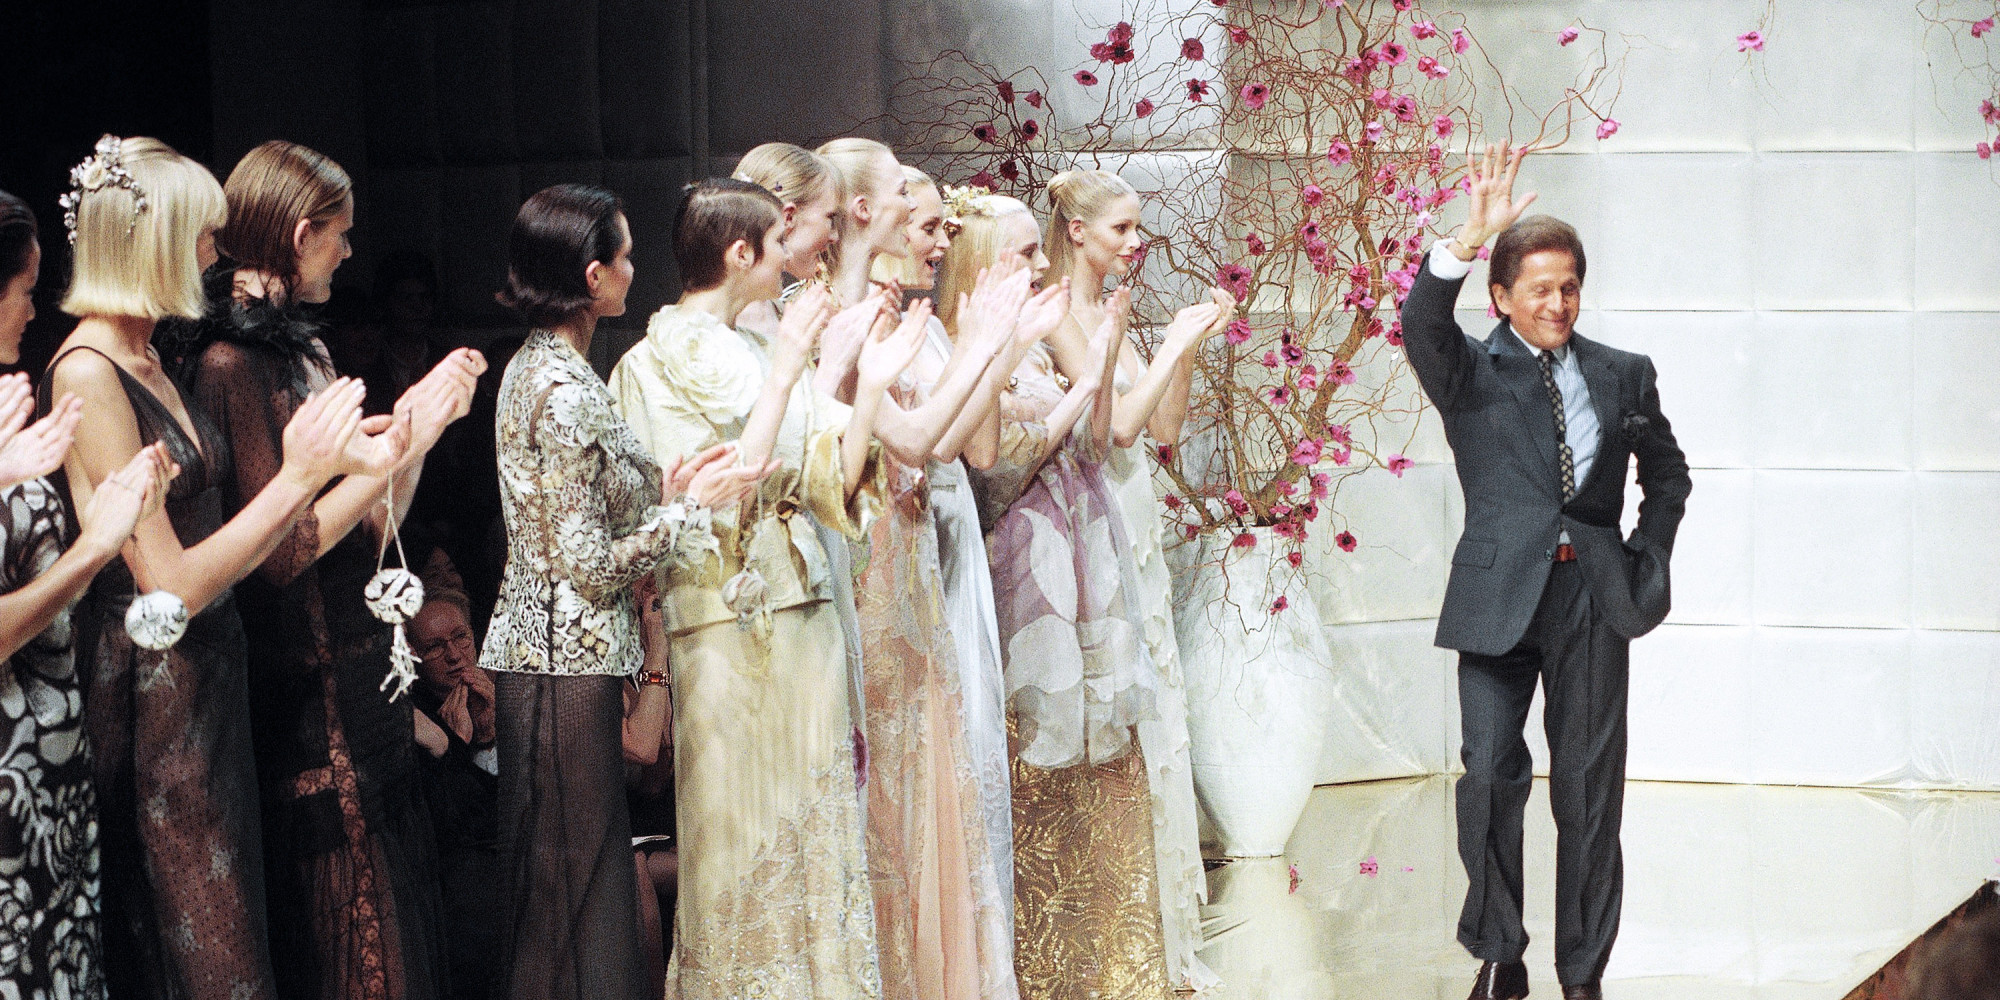 Valentino Garavani walking out on the runway after a fashion show of his house, waving at the audience